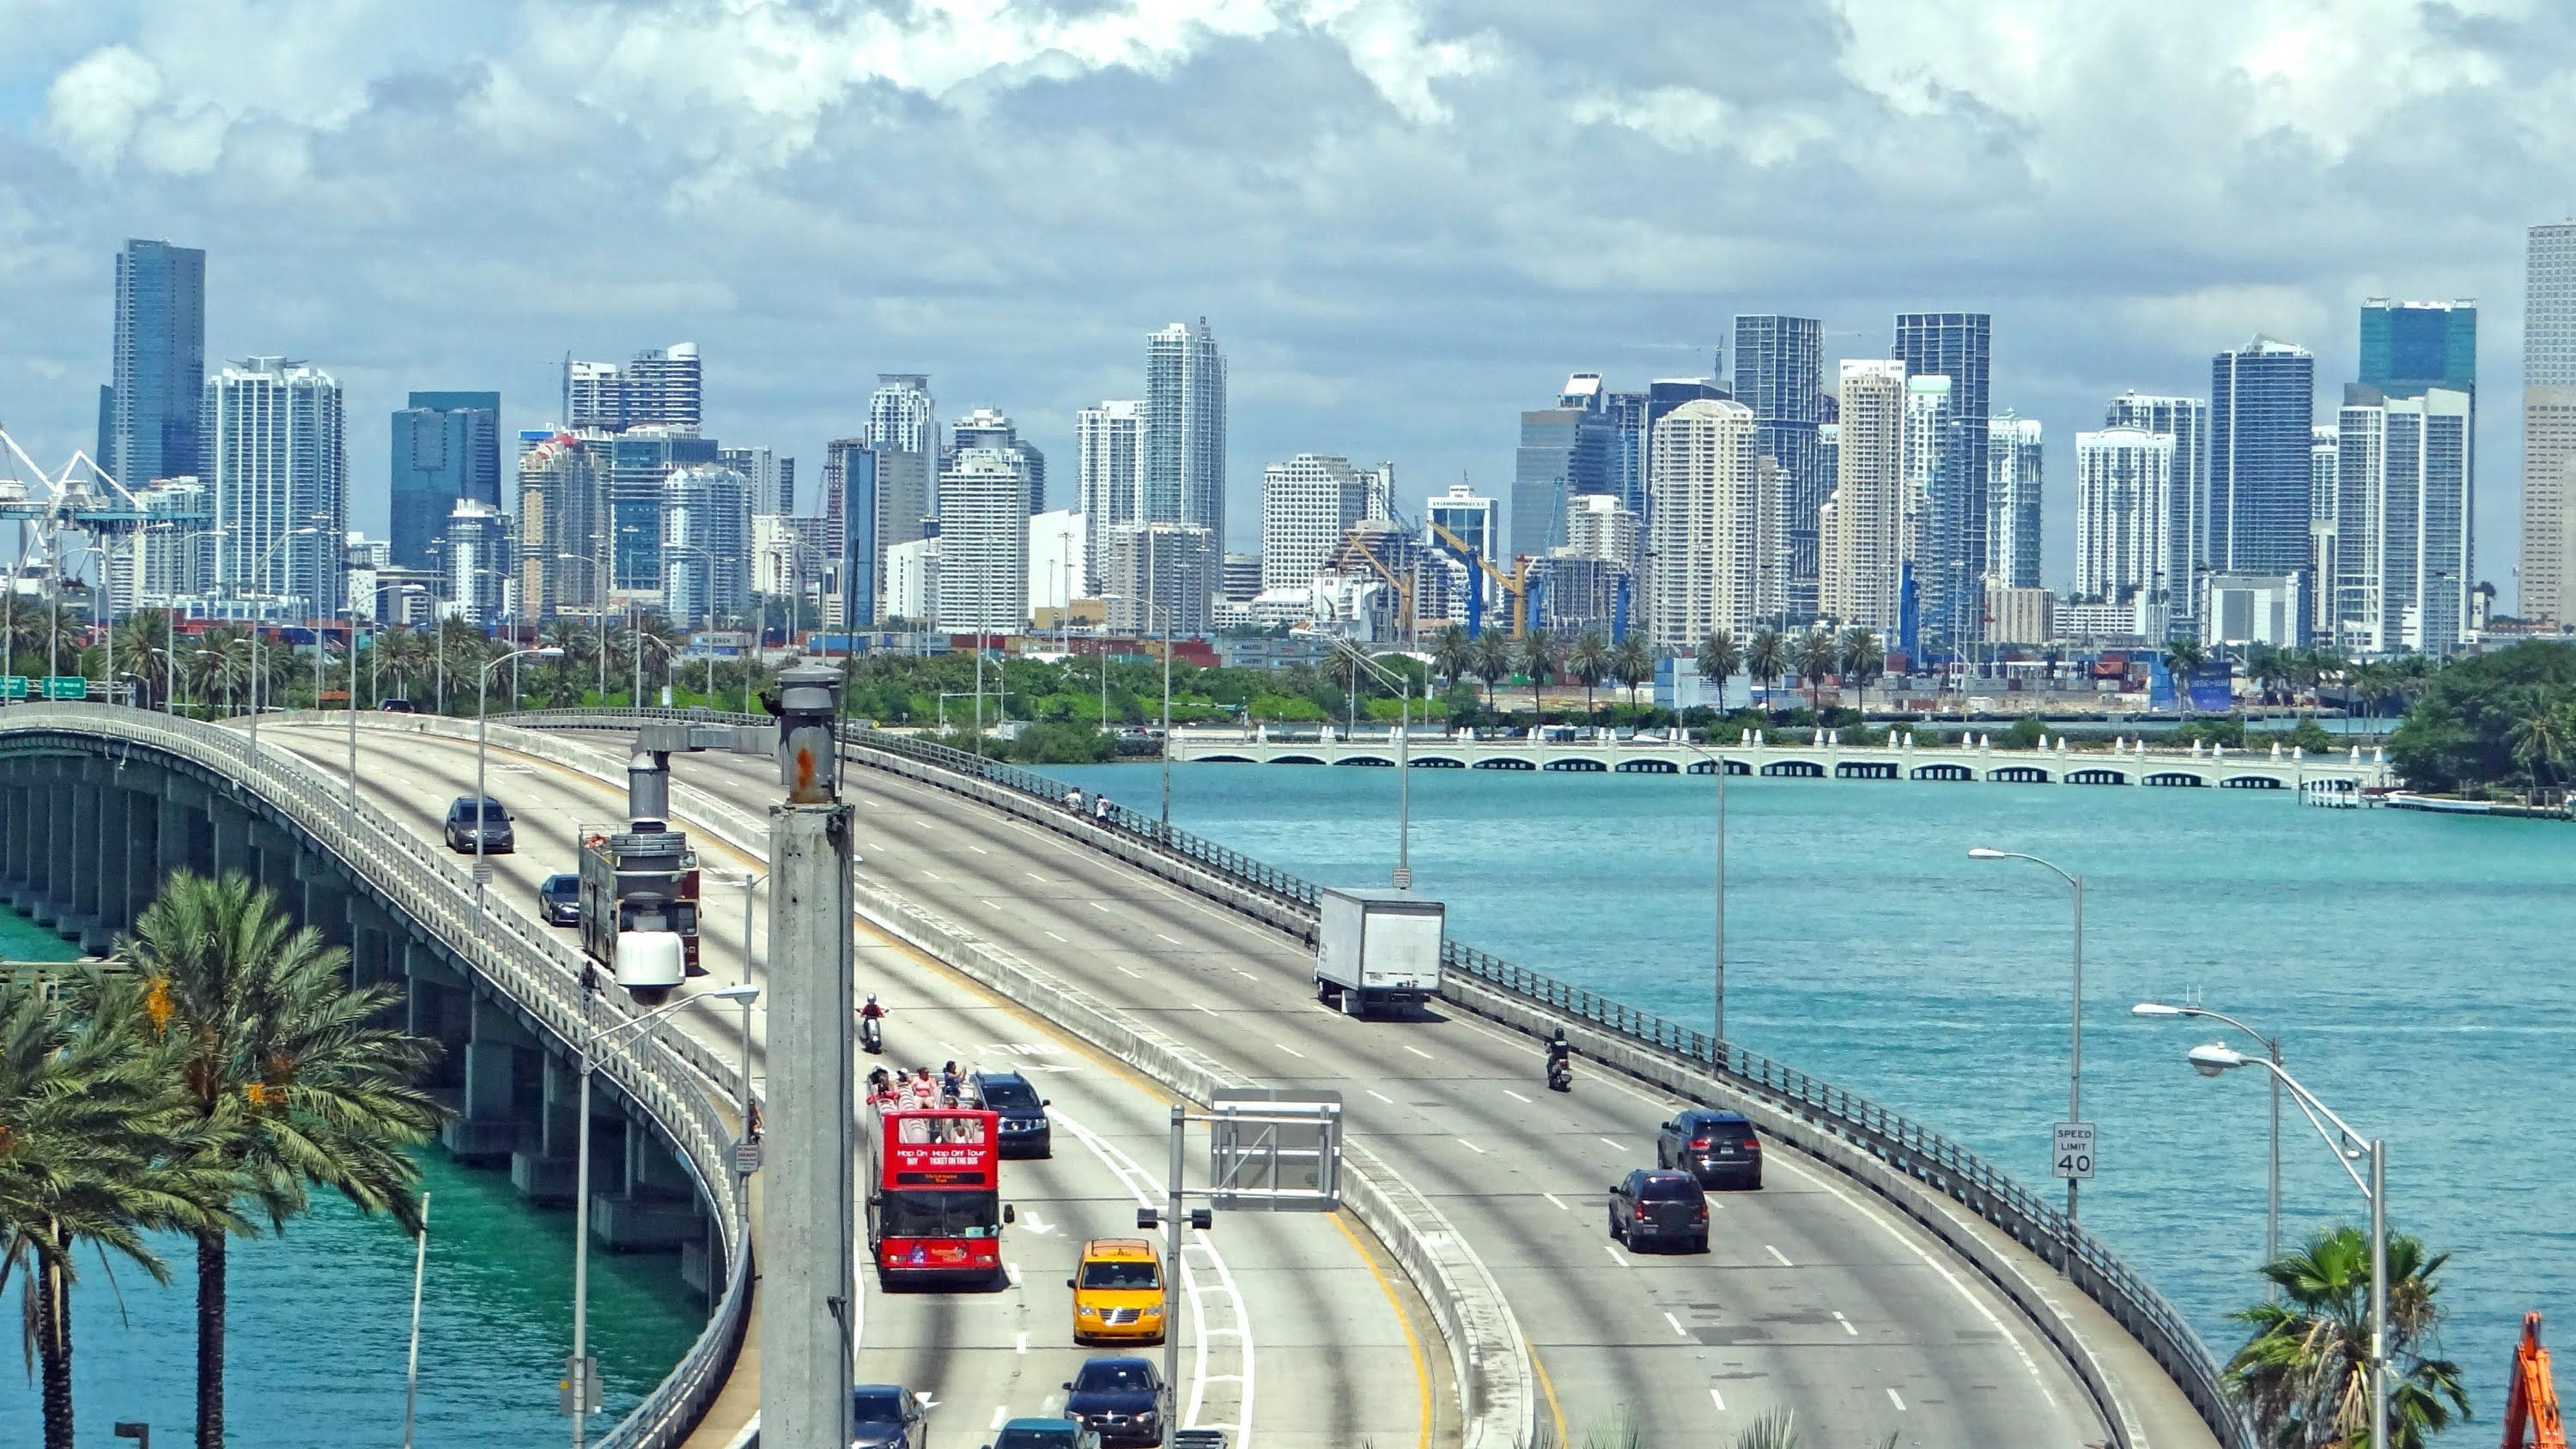 How to Travel from Miami to New York How to Travel from Miami to New York new foto